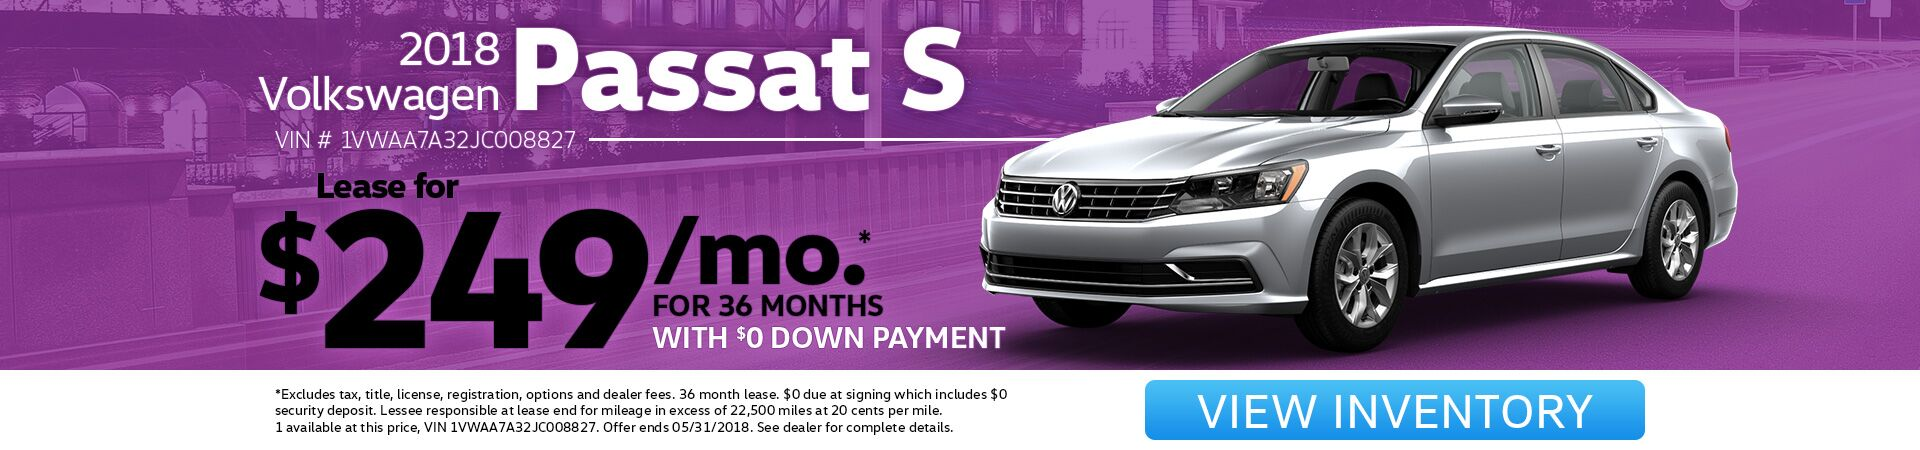 Passat Lease Special for May!